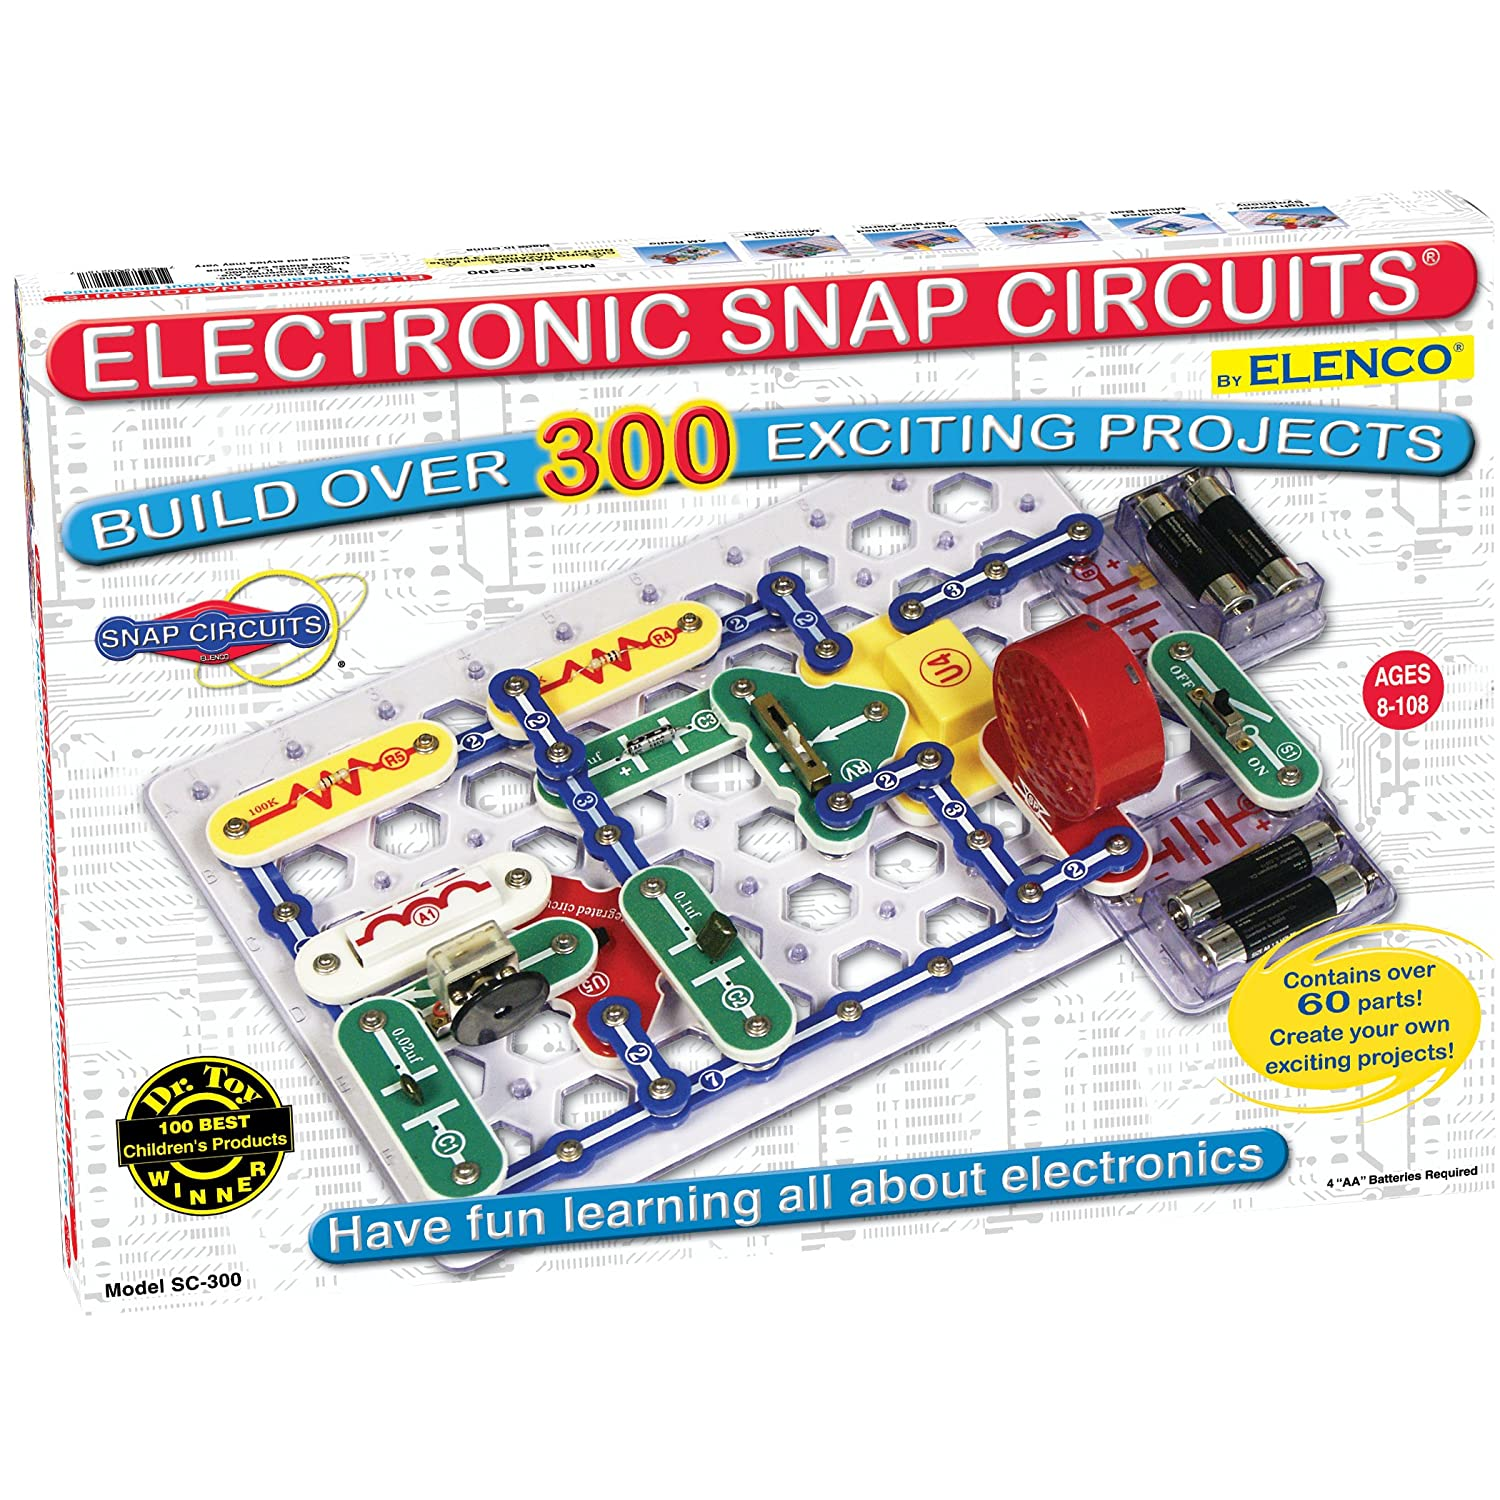 Electronic Toys For Boys : Snap circuits jr wondefrful toy and over